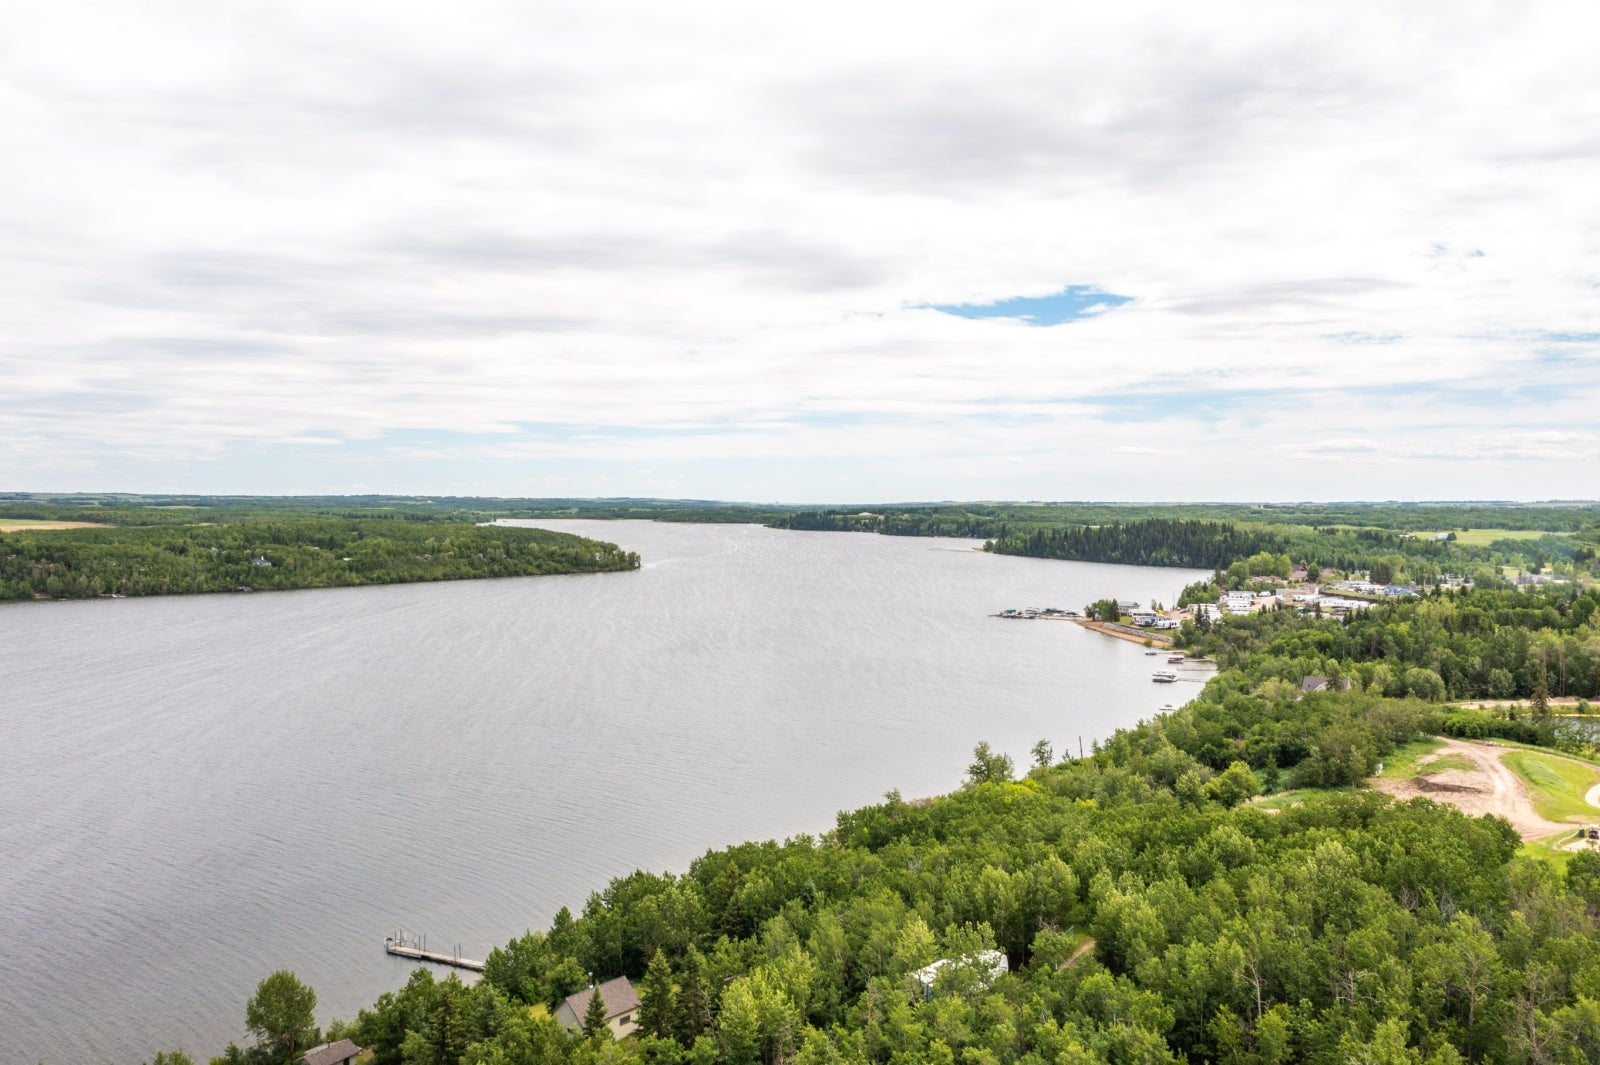 6084, 25054 SOUTH PINE LAKE Road - Whispering Pines Residential Land for sale(A1100818) #11